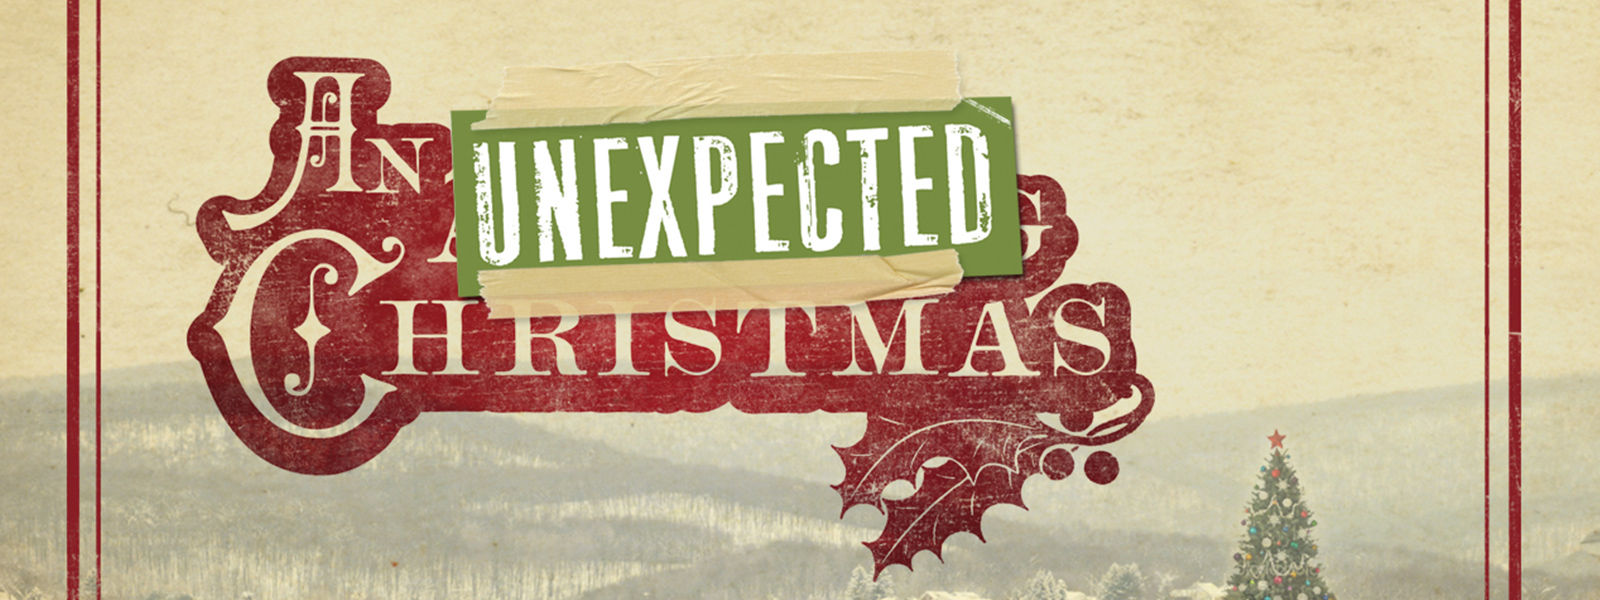 Rightnow Media Streaming Study An Unexpected Christmas Andy Stanley North Point Resources